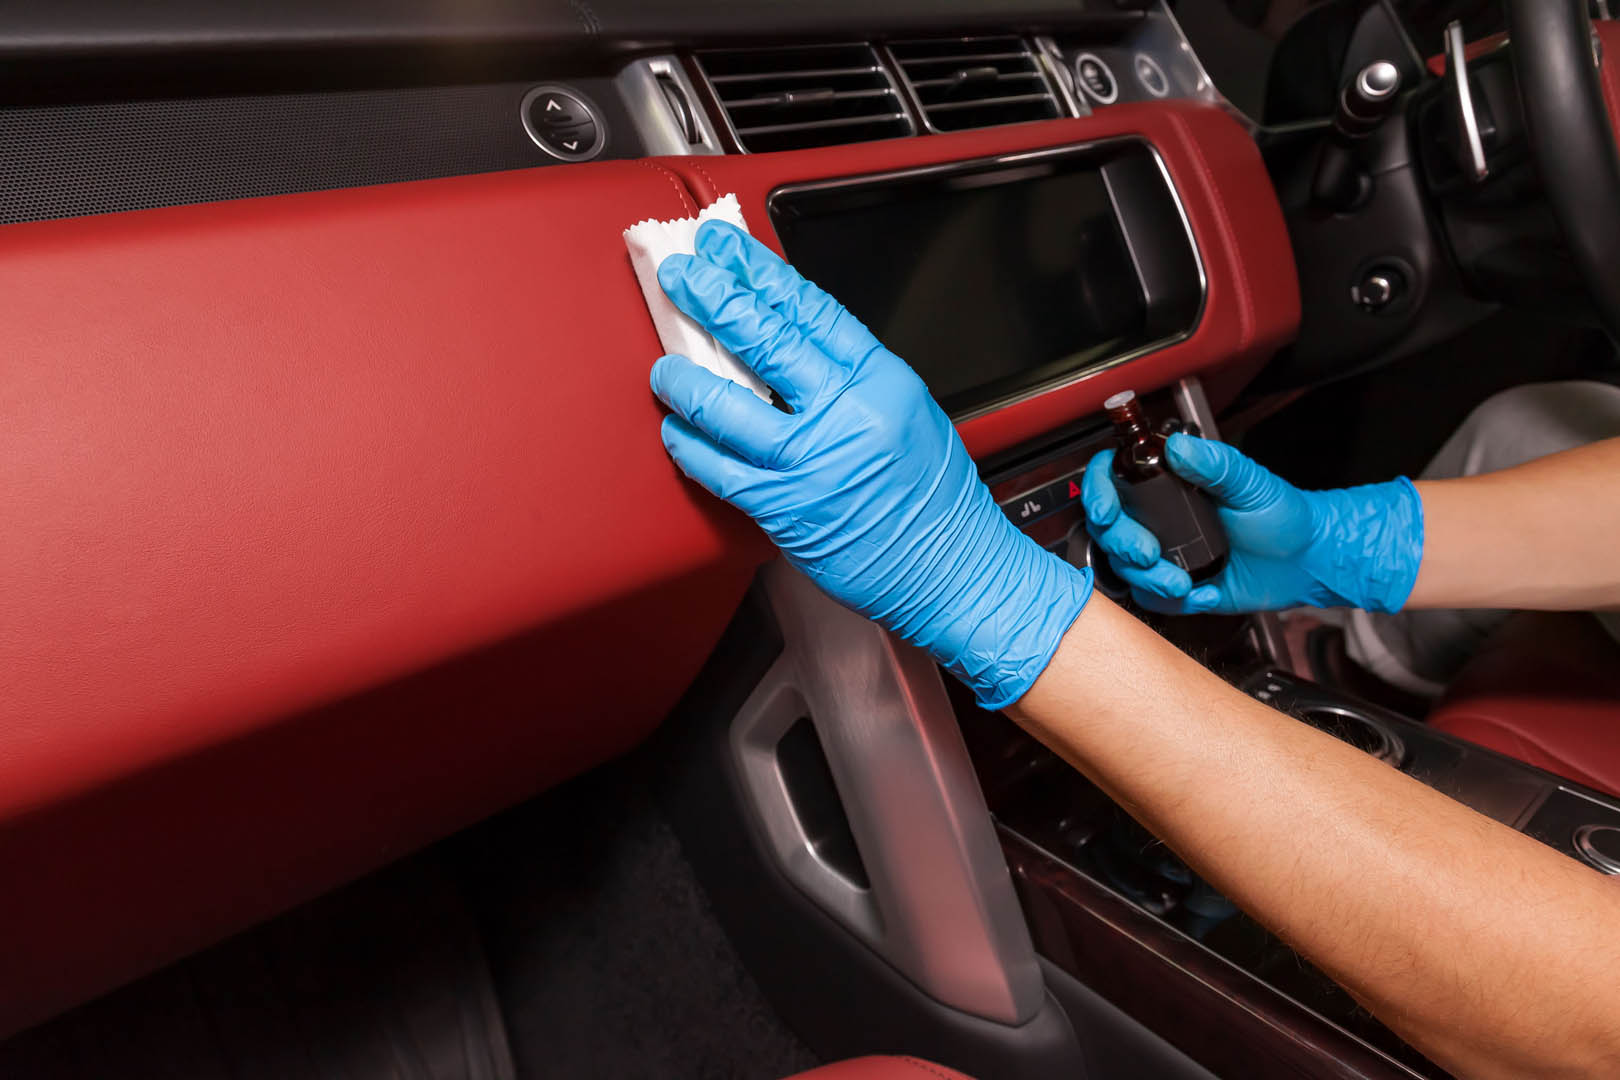 Cleaning and auto detailing services on dashboard of car with red interior